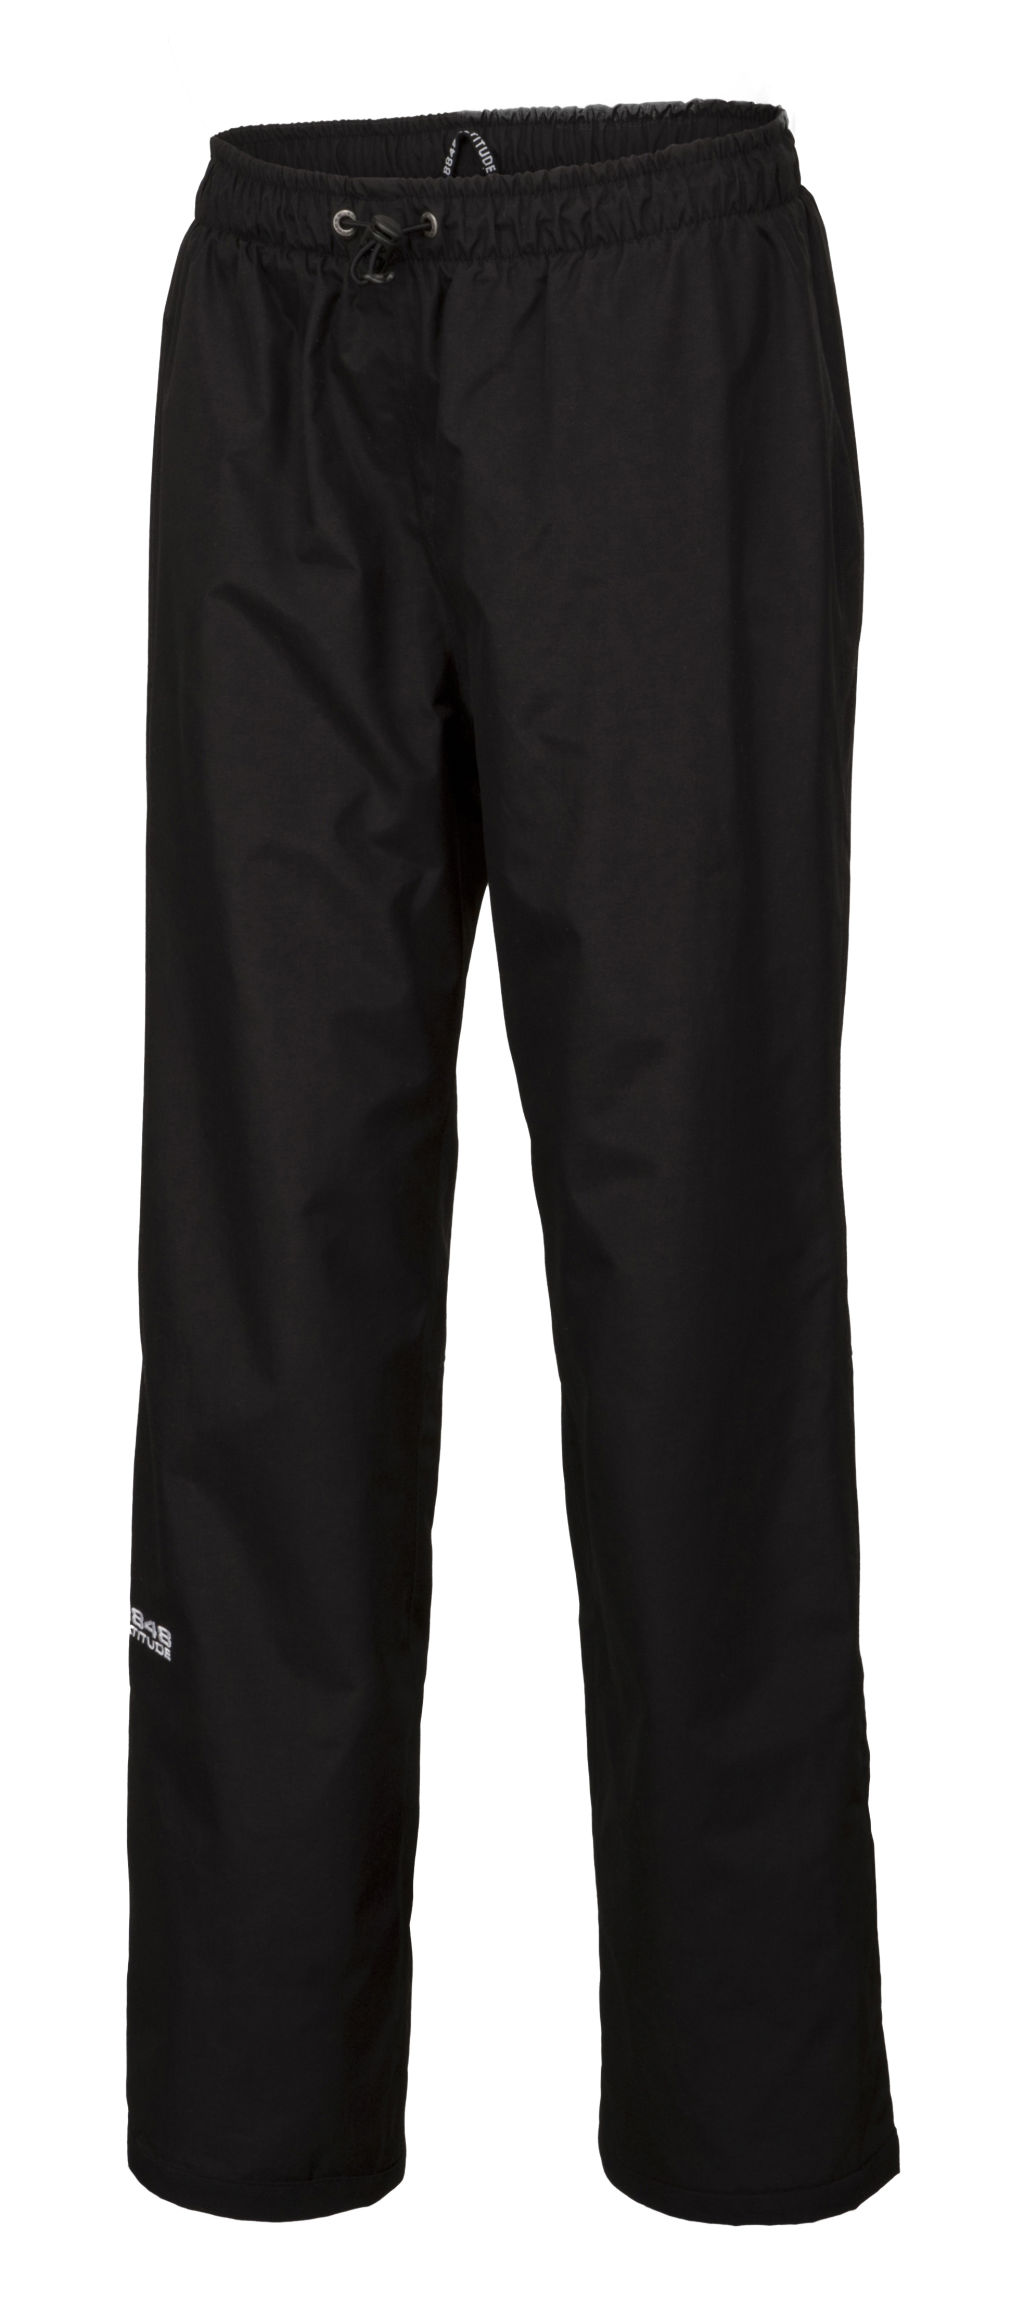 8848 Altitude Rock Pants Jr